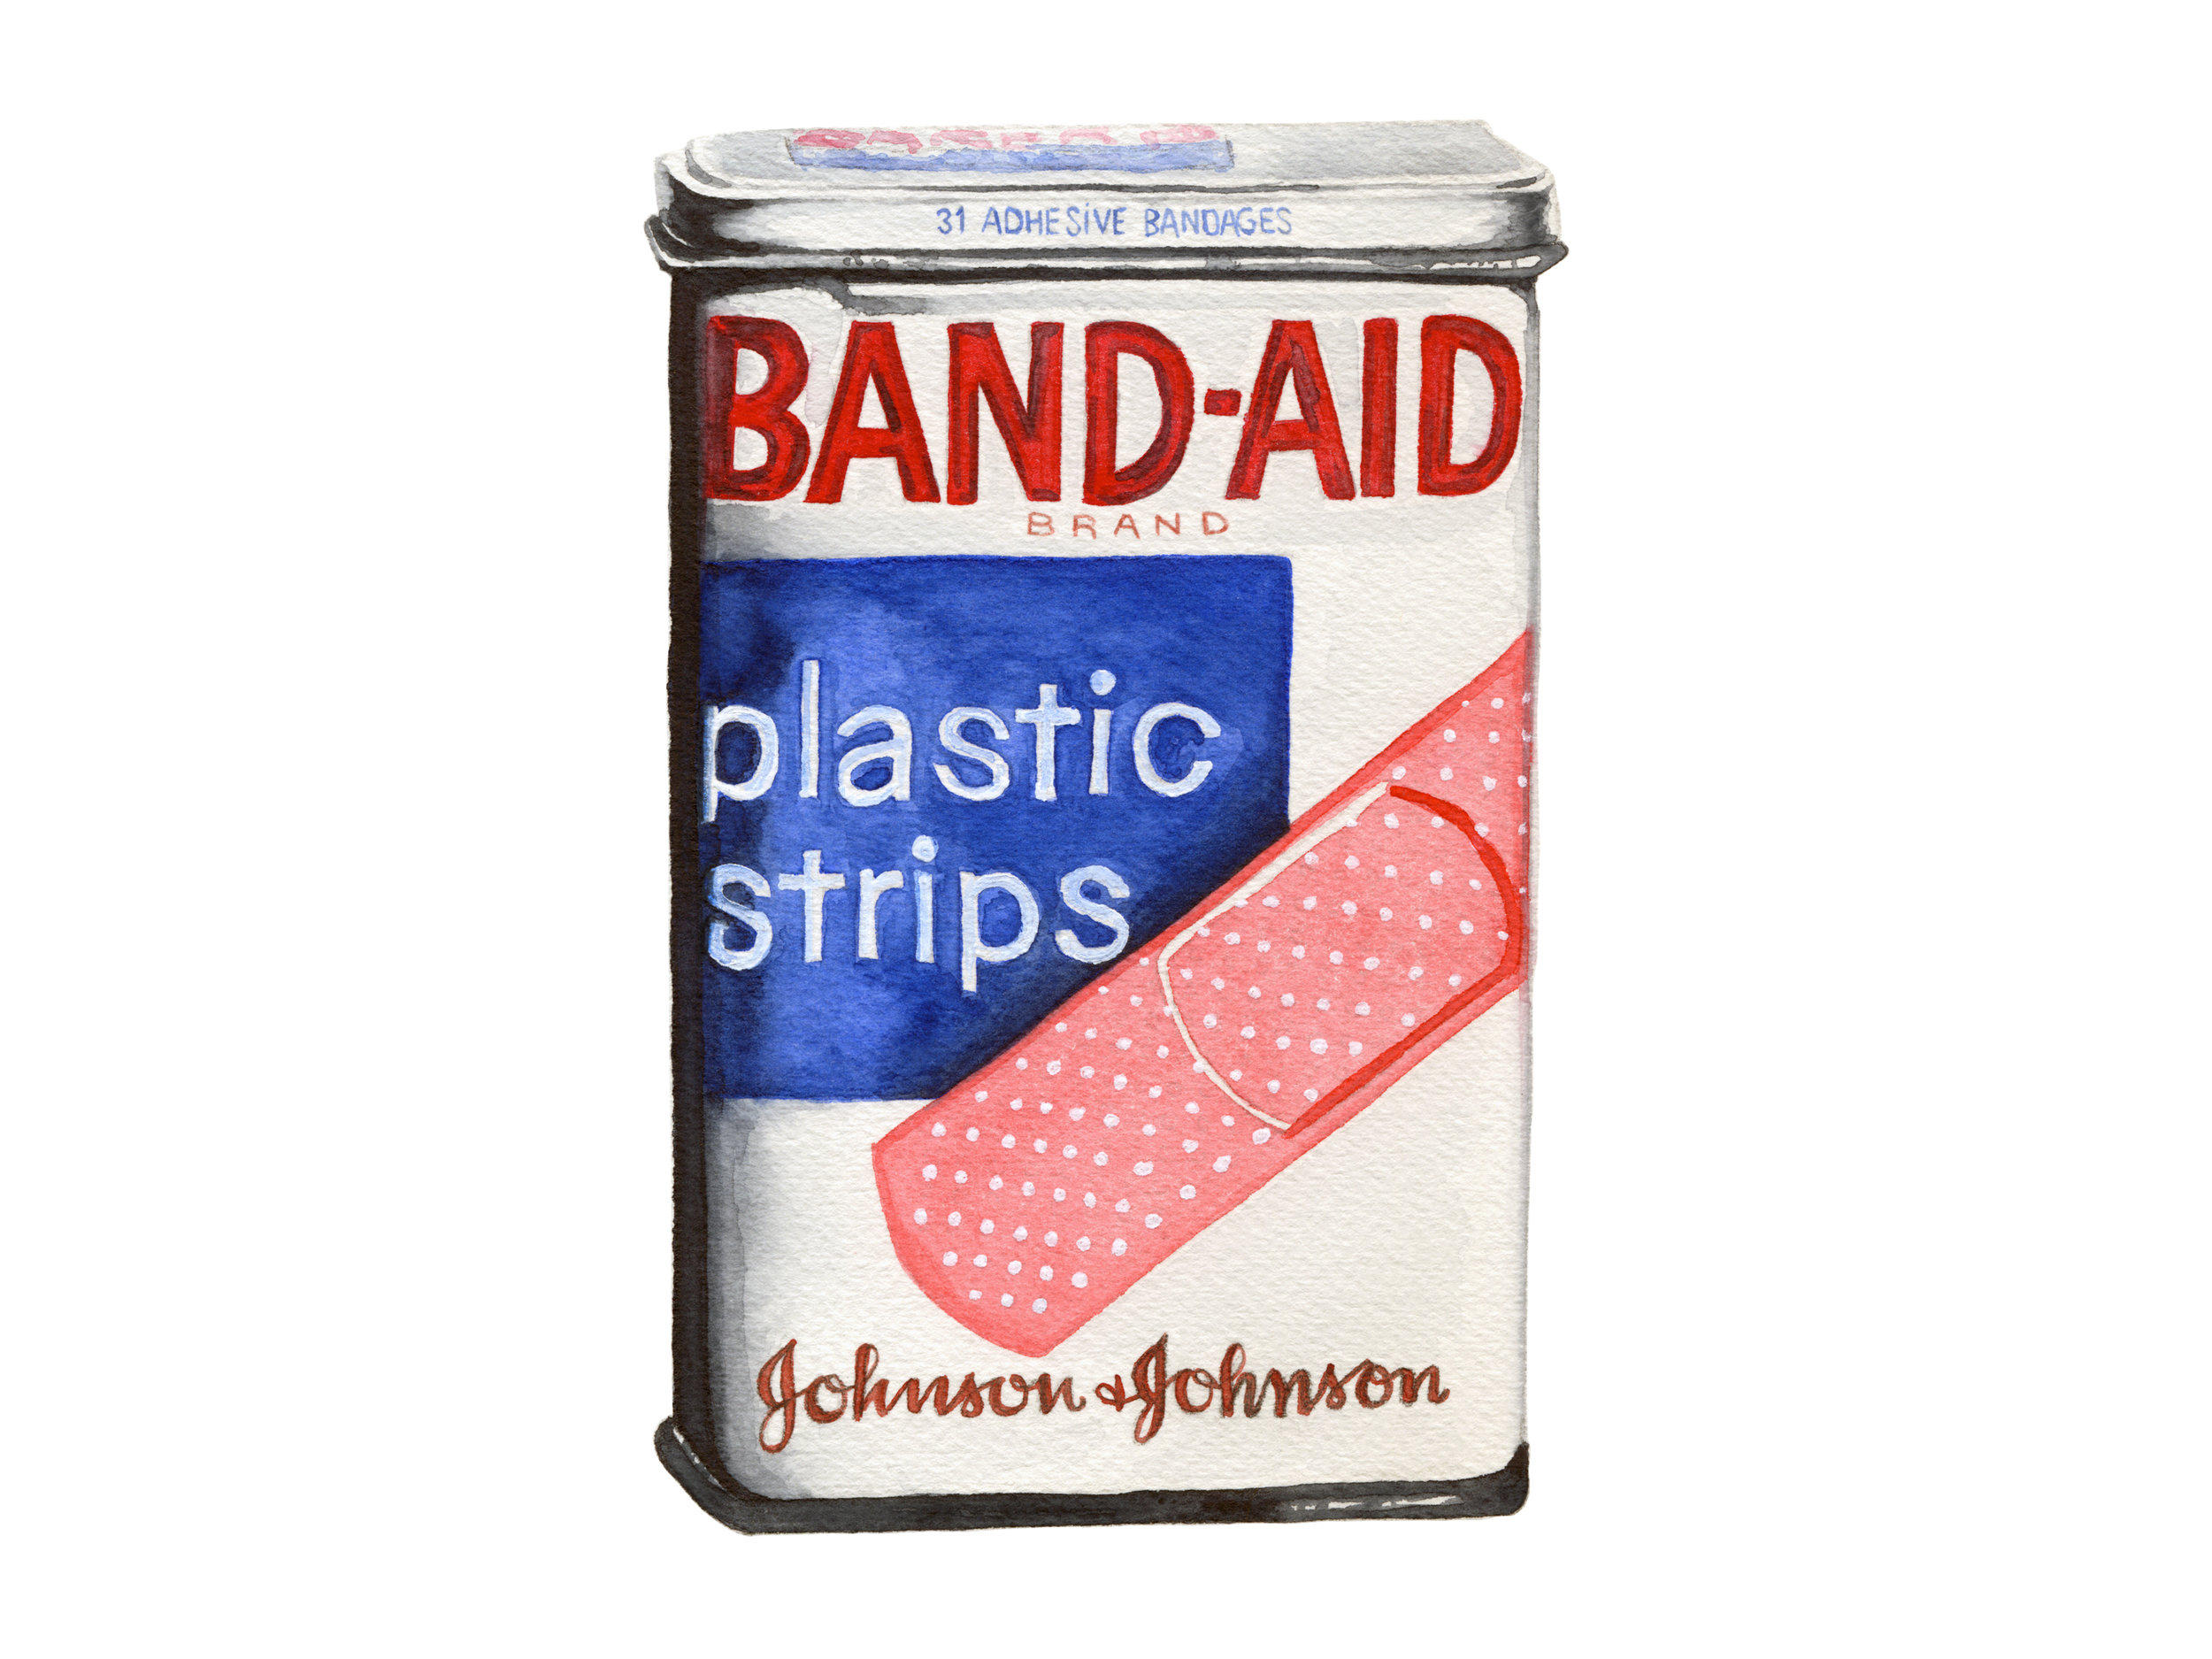 Band-Aid Plastic Strips Vintage Tin - Watercolor Illustration by Cheryl Oz